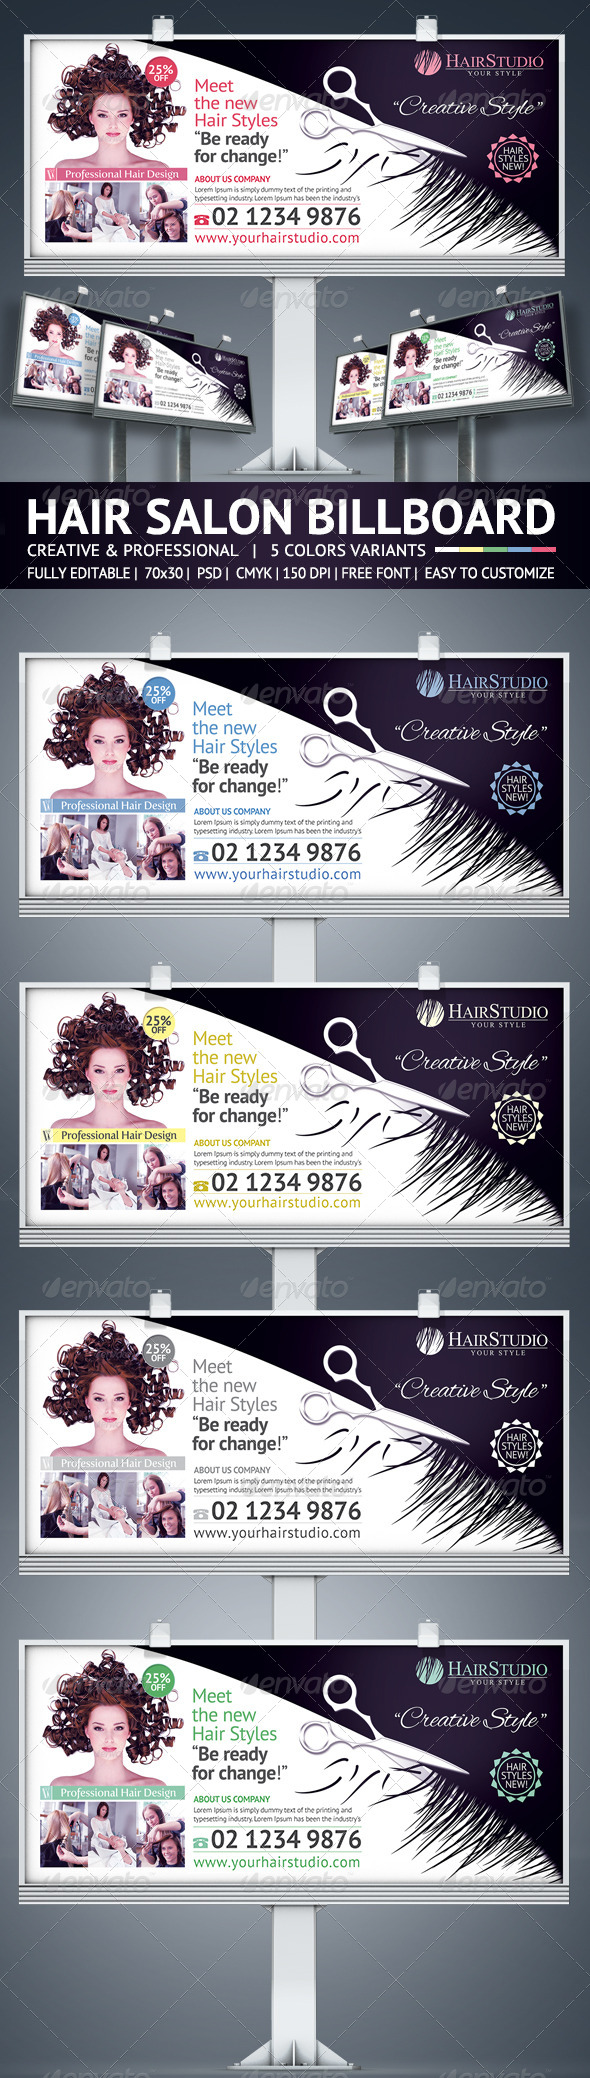 Hair Salon Billboard Graphicriver